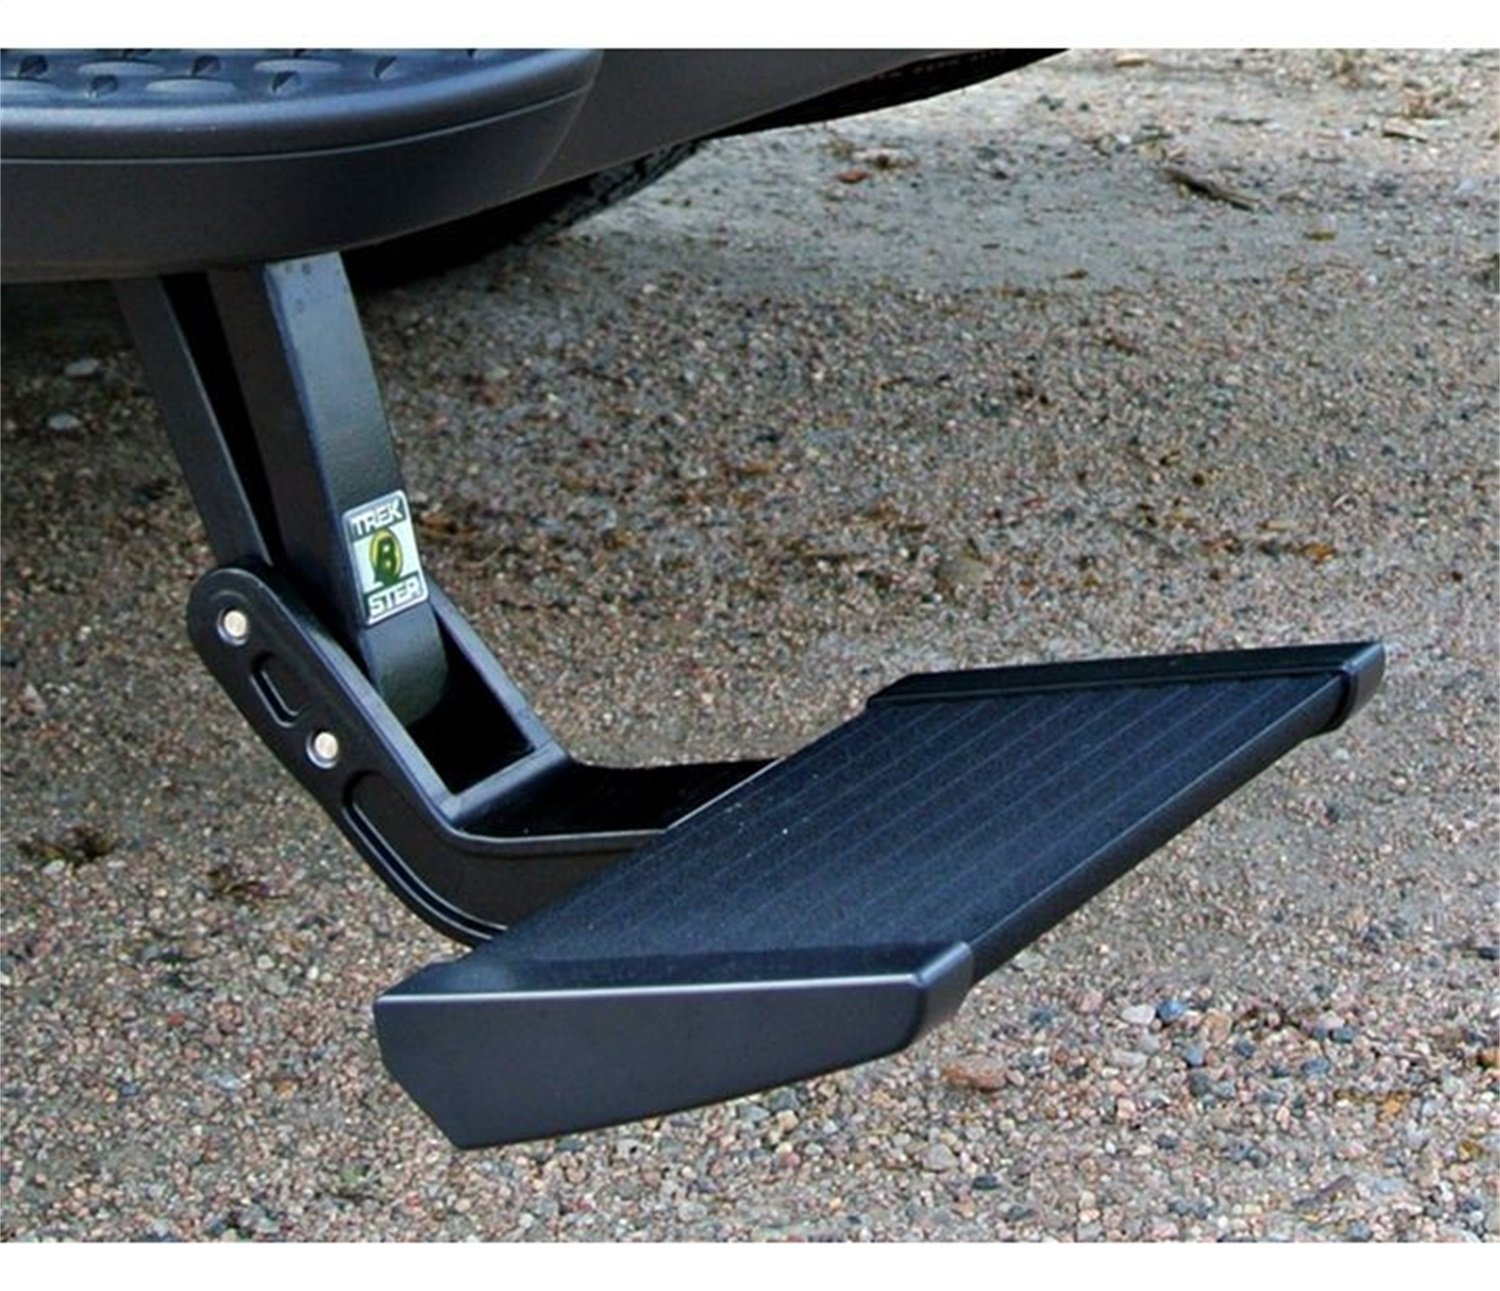 Bestop 75305-15 Rear-Mount Trekstep for 2007-2018 Toyota Tundra (Requires Factory-Installed Hitch)